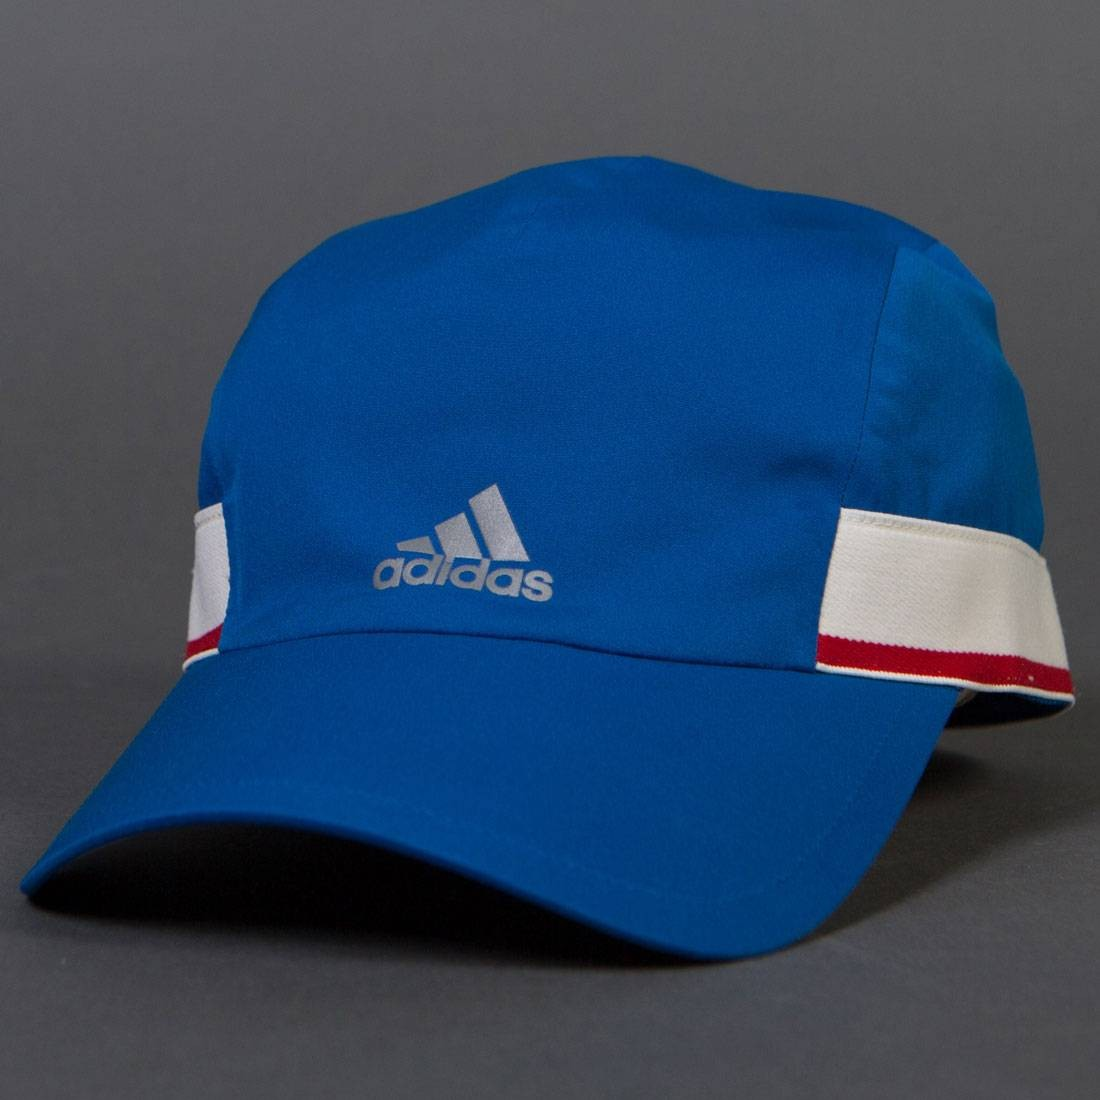 d52f537f4df Adidas Consortium RTM Cap - Run Thru Time blue chalk white scarlet